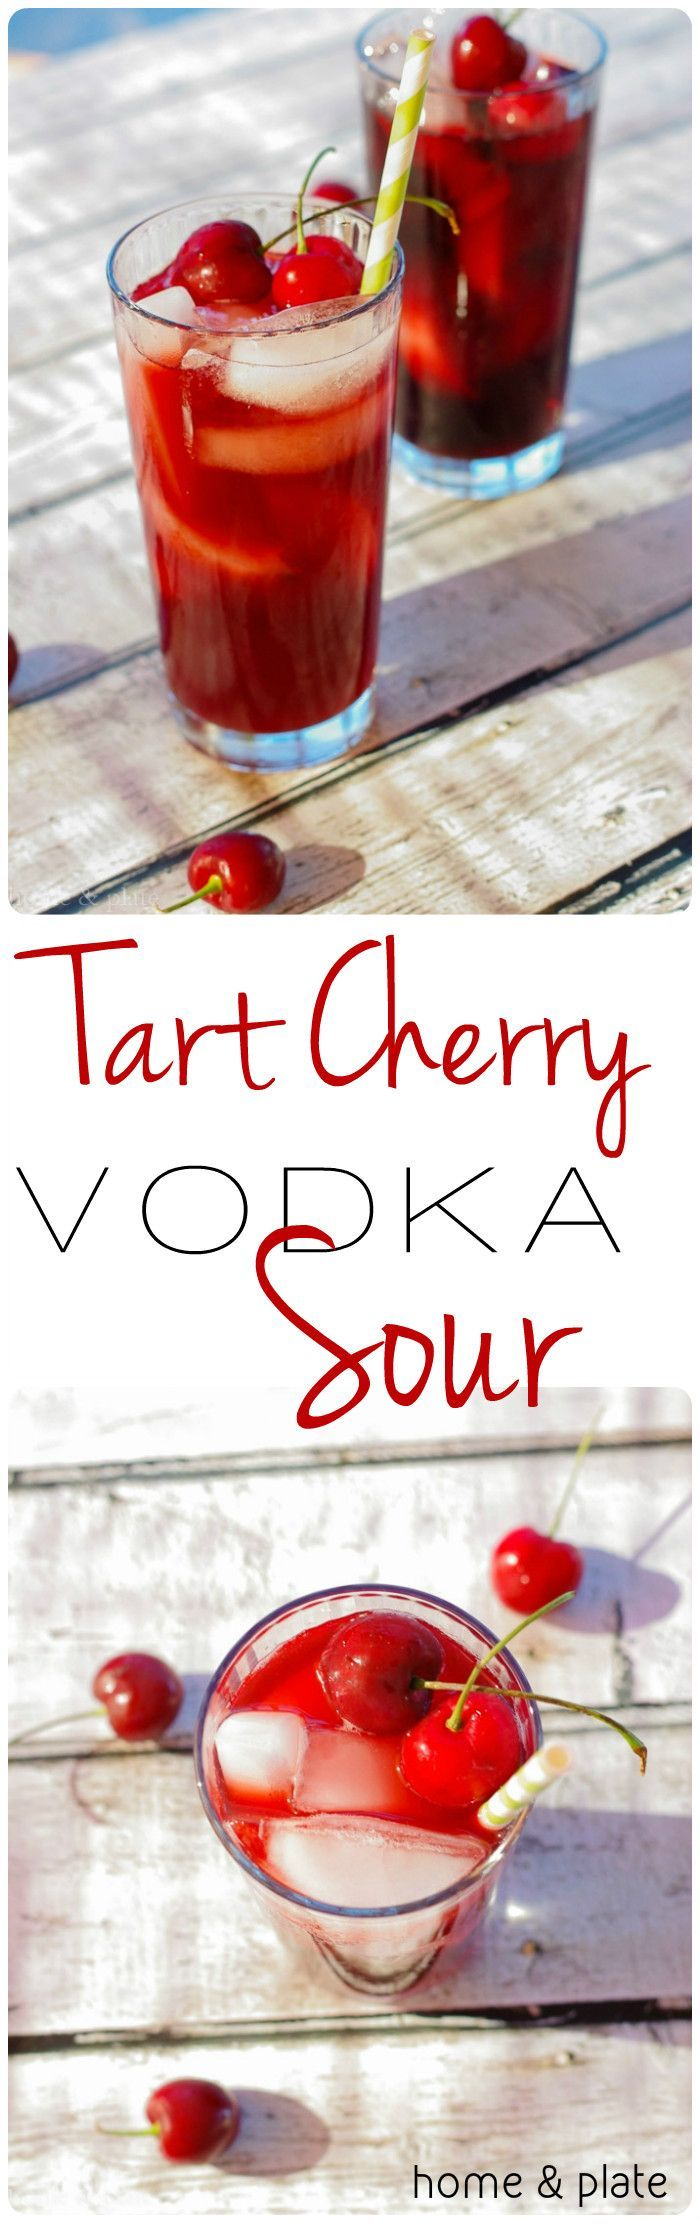 Cherry Vodka Sour Cocktail Recipe Home And Plate Recipe Cherry Vodka Vodka Sour Cherry Vodka Sour